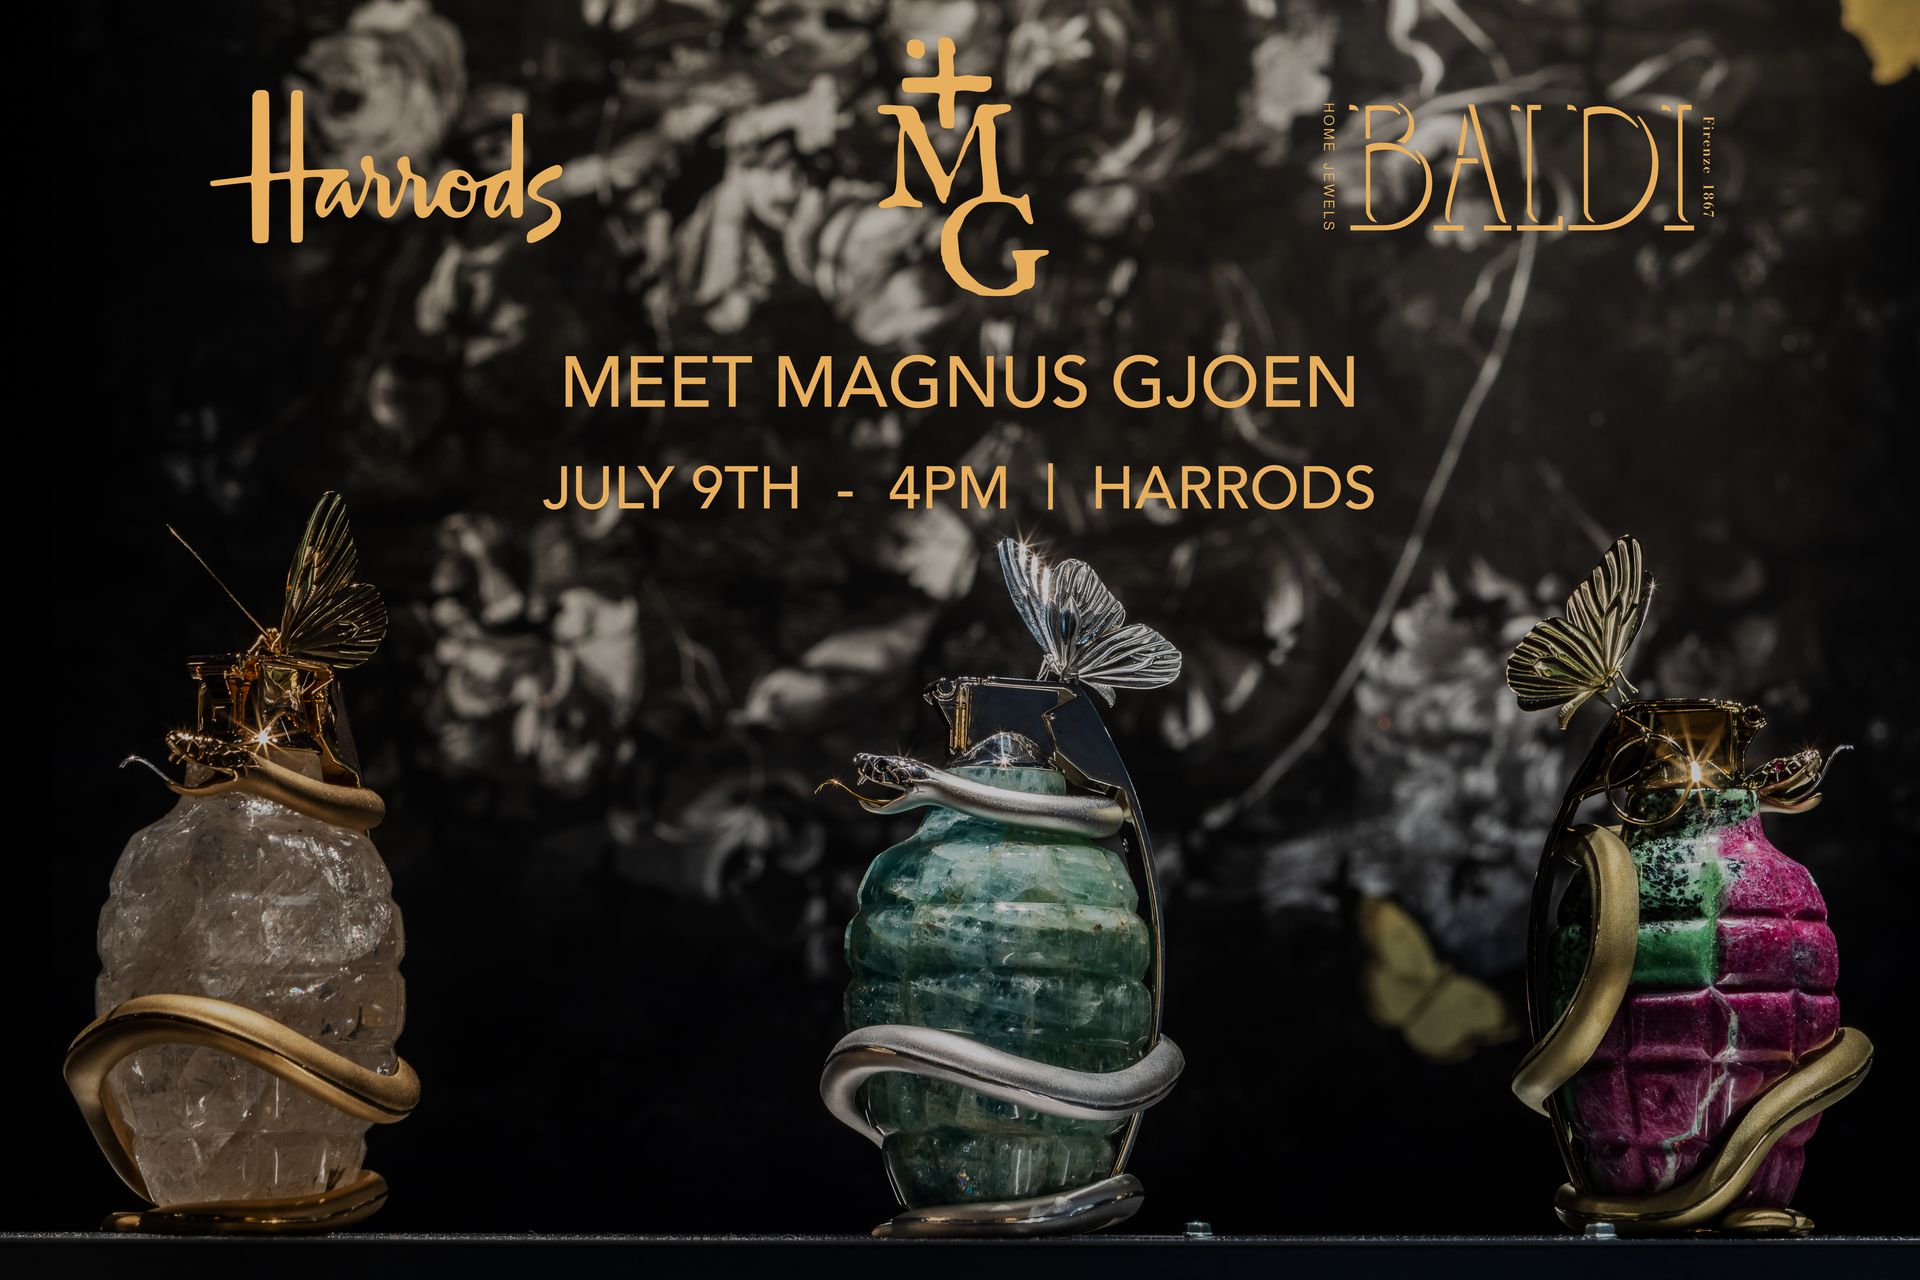 Magnus Gjoen x Baldi Home Jewels Presentation at Harrods